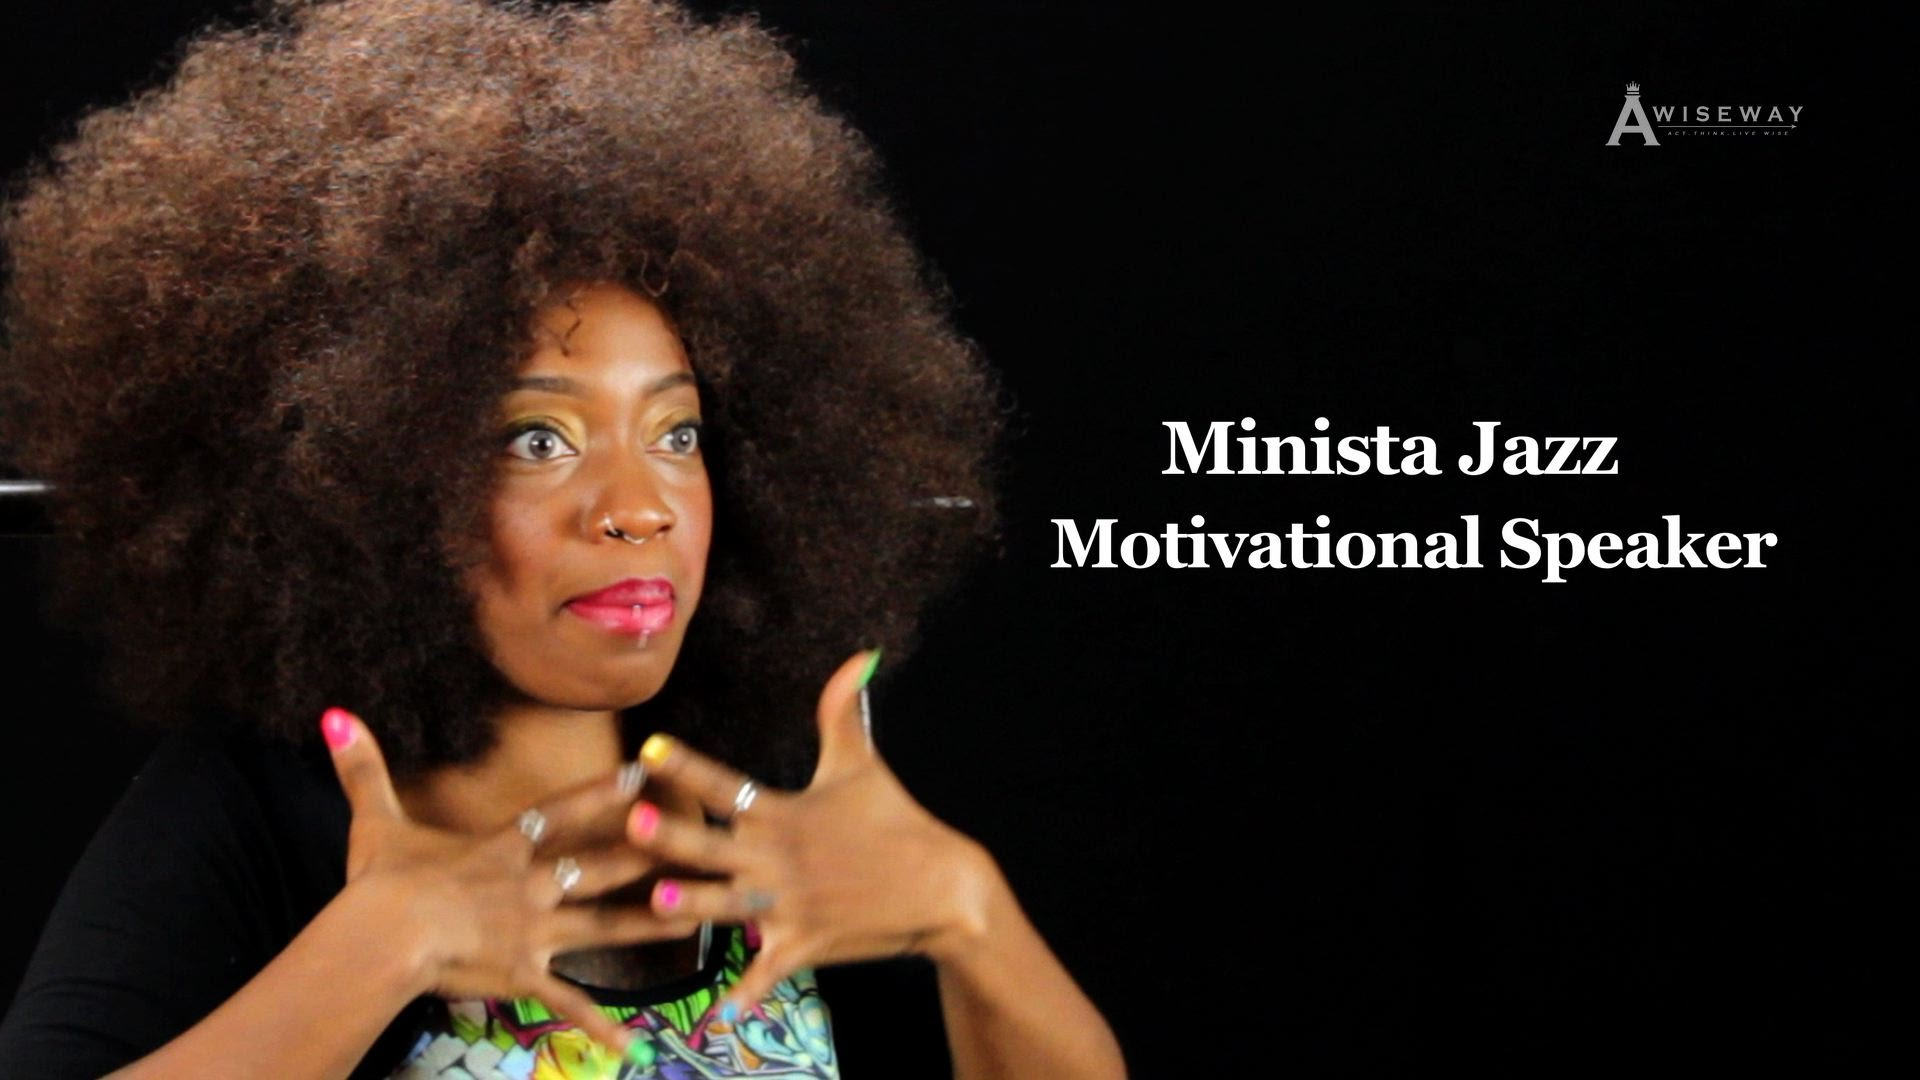 Motivational Speaker Says Everyone Should Know That They Are an Inspiration